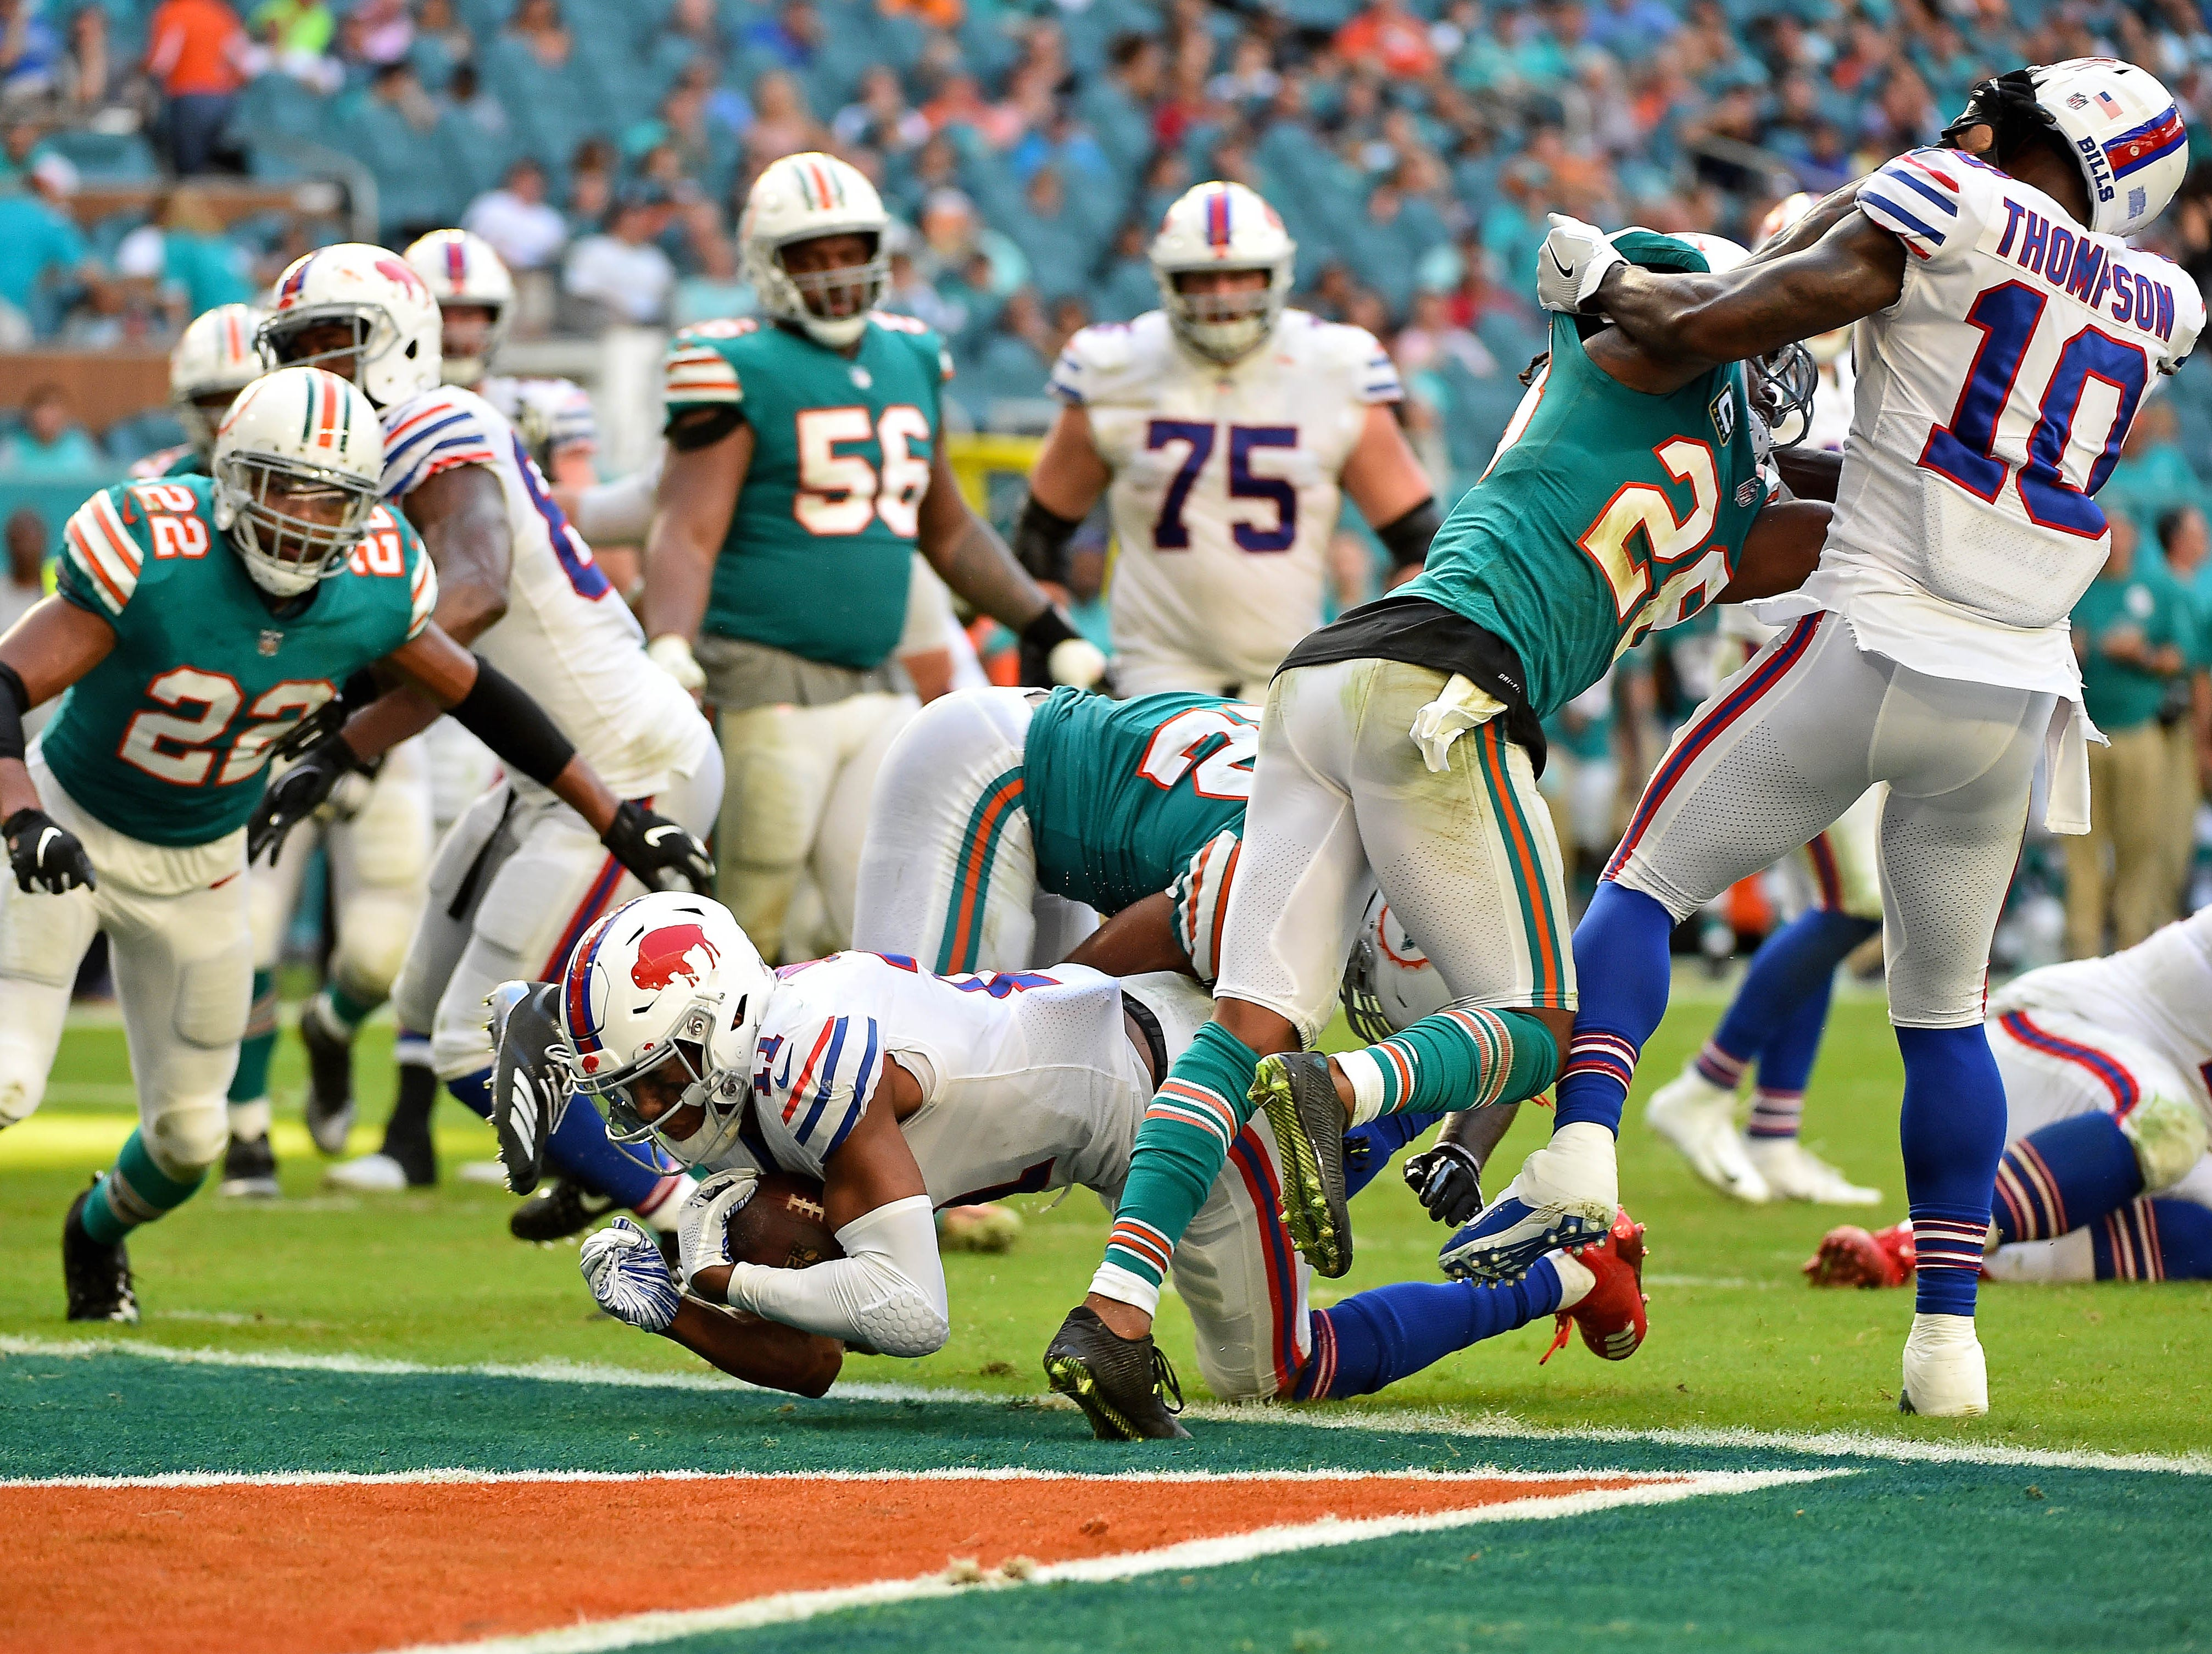 Dec 2, 2018; Miami Gardens, FL, USA; Buffalo Bills wide receiver Zay Jones (11) dives in for a two-point conversion during the second half against the Miami Dolphins at Hard Rock Stadium. Mandatory Credit: Jasen Vinlove-USA TODAY Sports